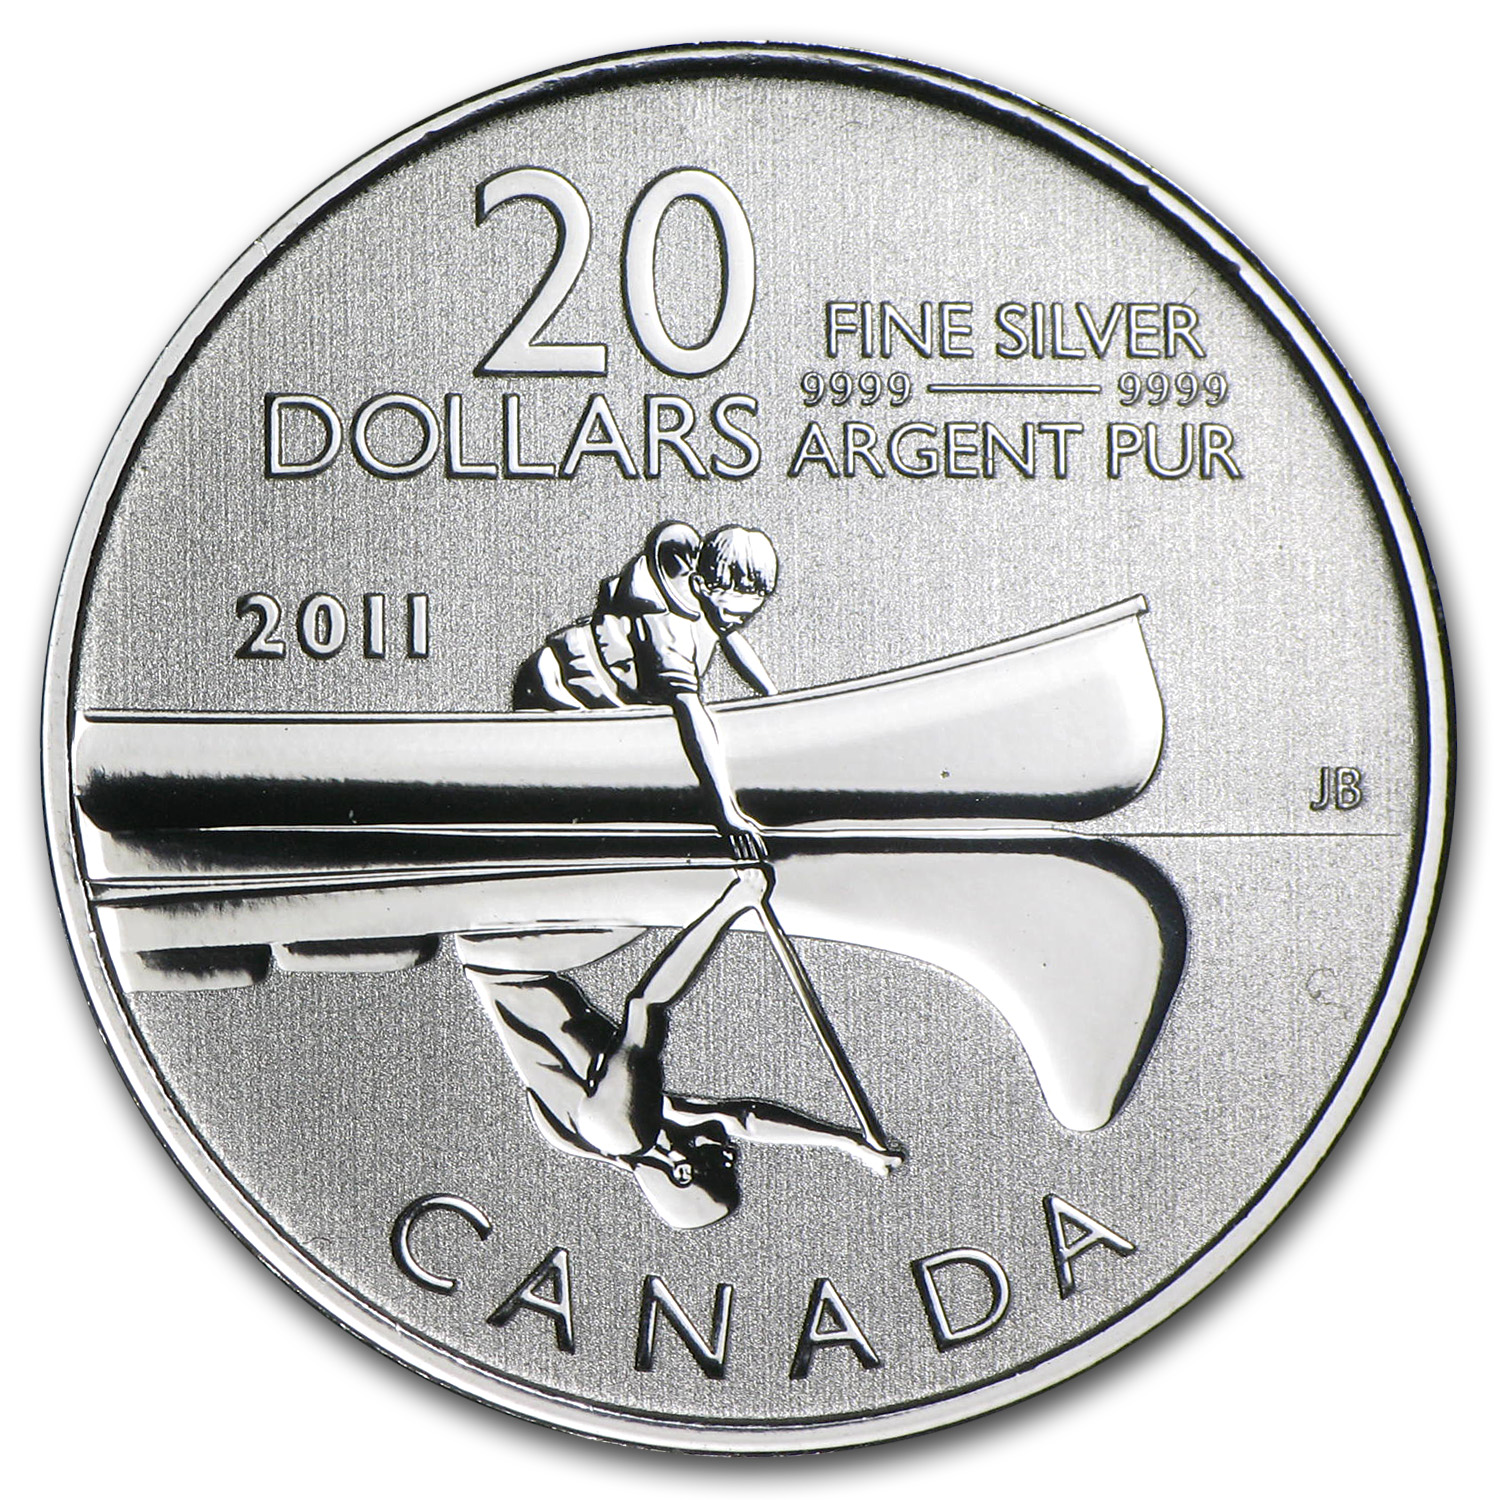 2011 1/4 oz Silver Canadian $20 Canoe Coin (Coin Only)